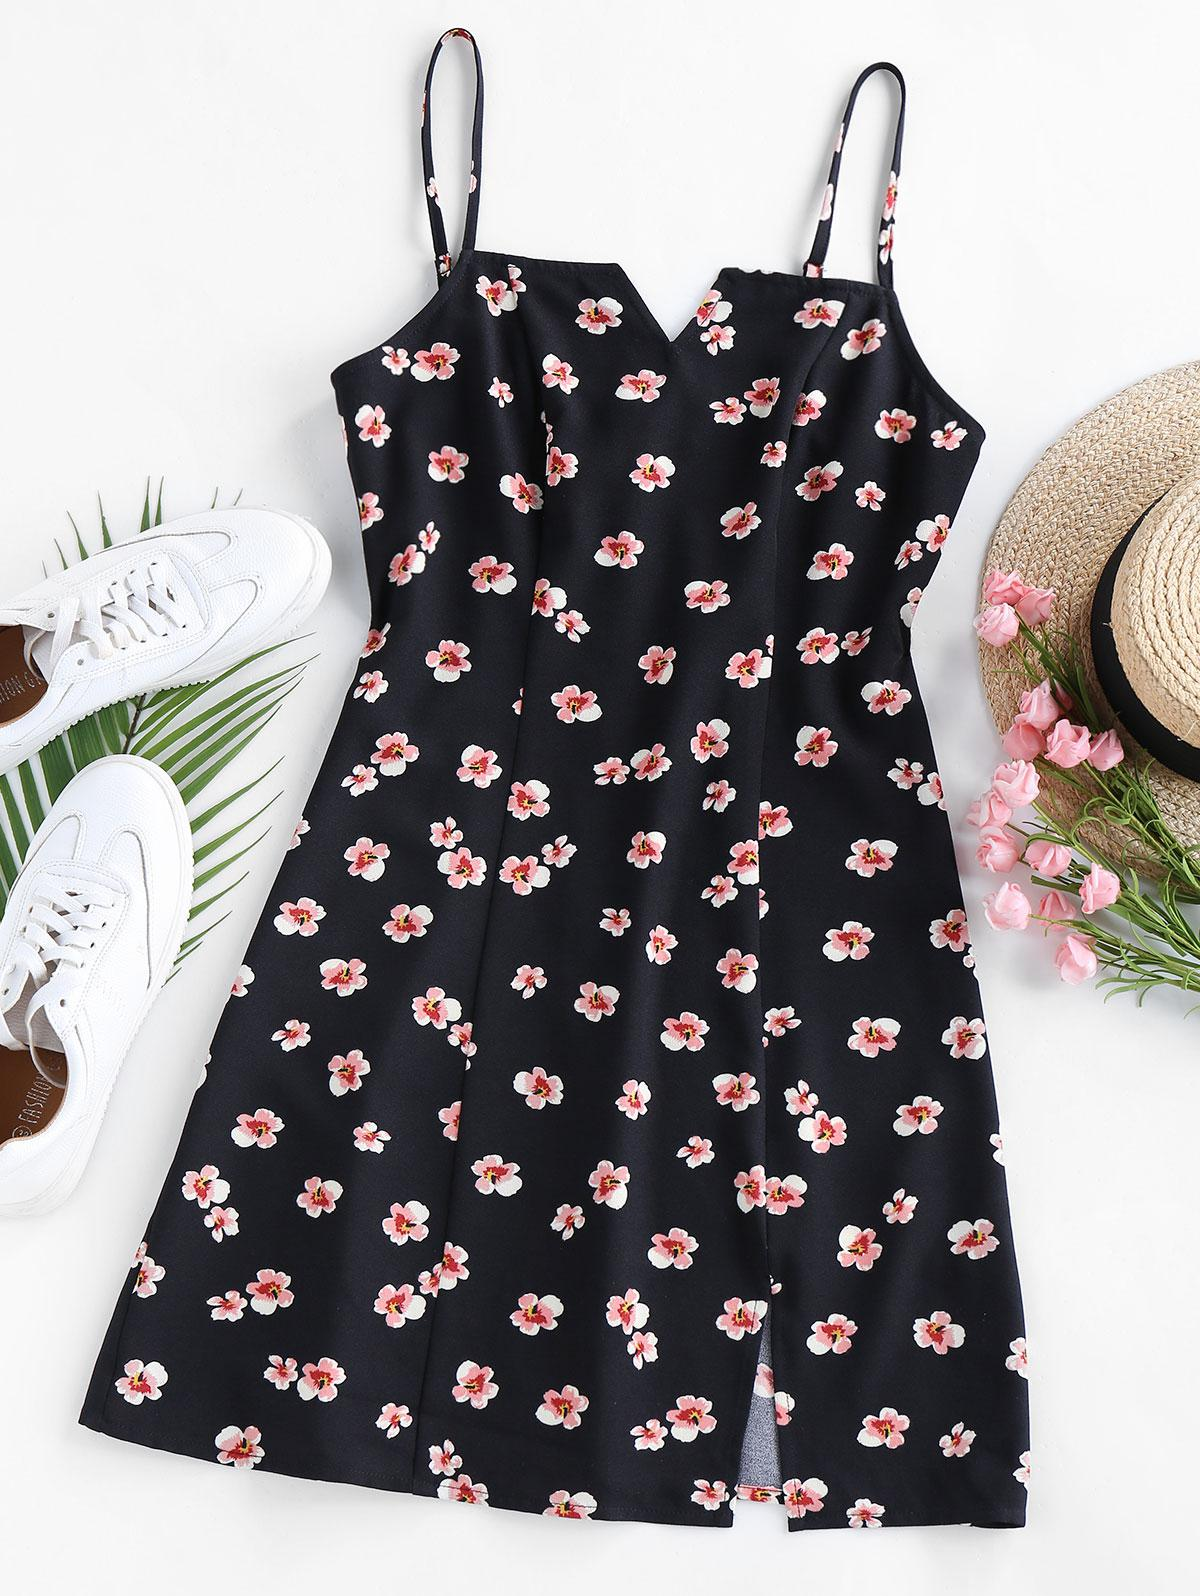 ZAFUL Ditsy Floral V Cut Slit Cami Dress